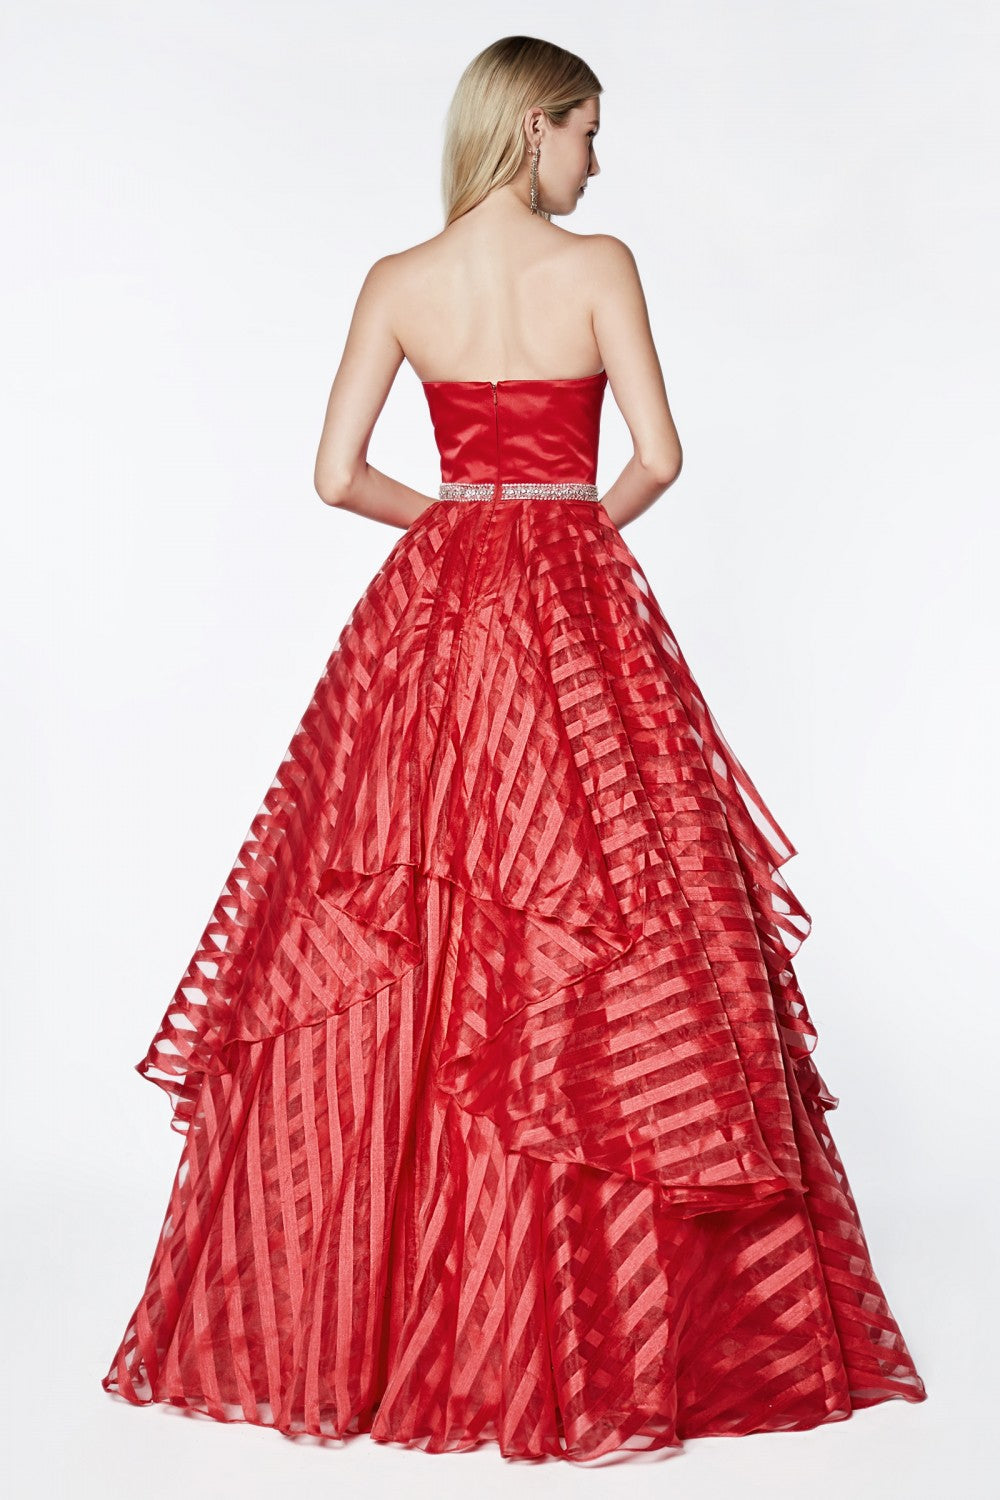 Strapless Ball Gown With Satin Bodice And Striped Organza Layered Skirt